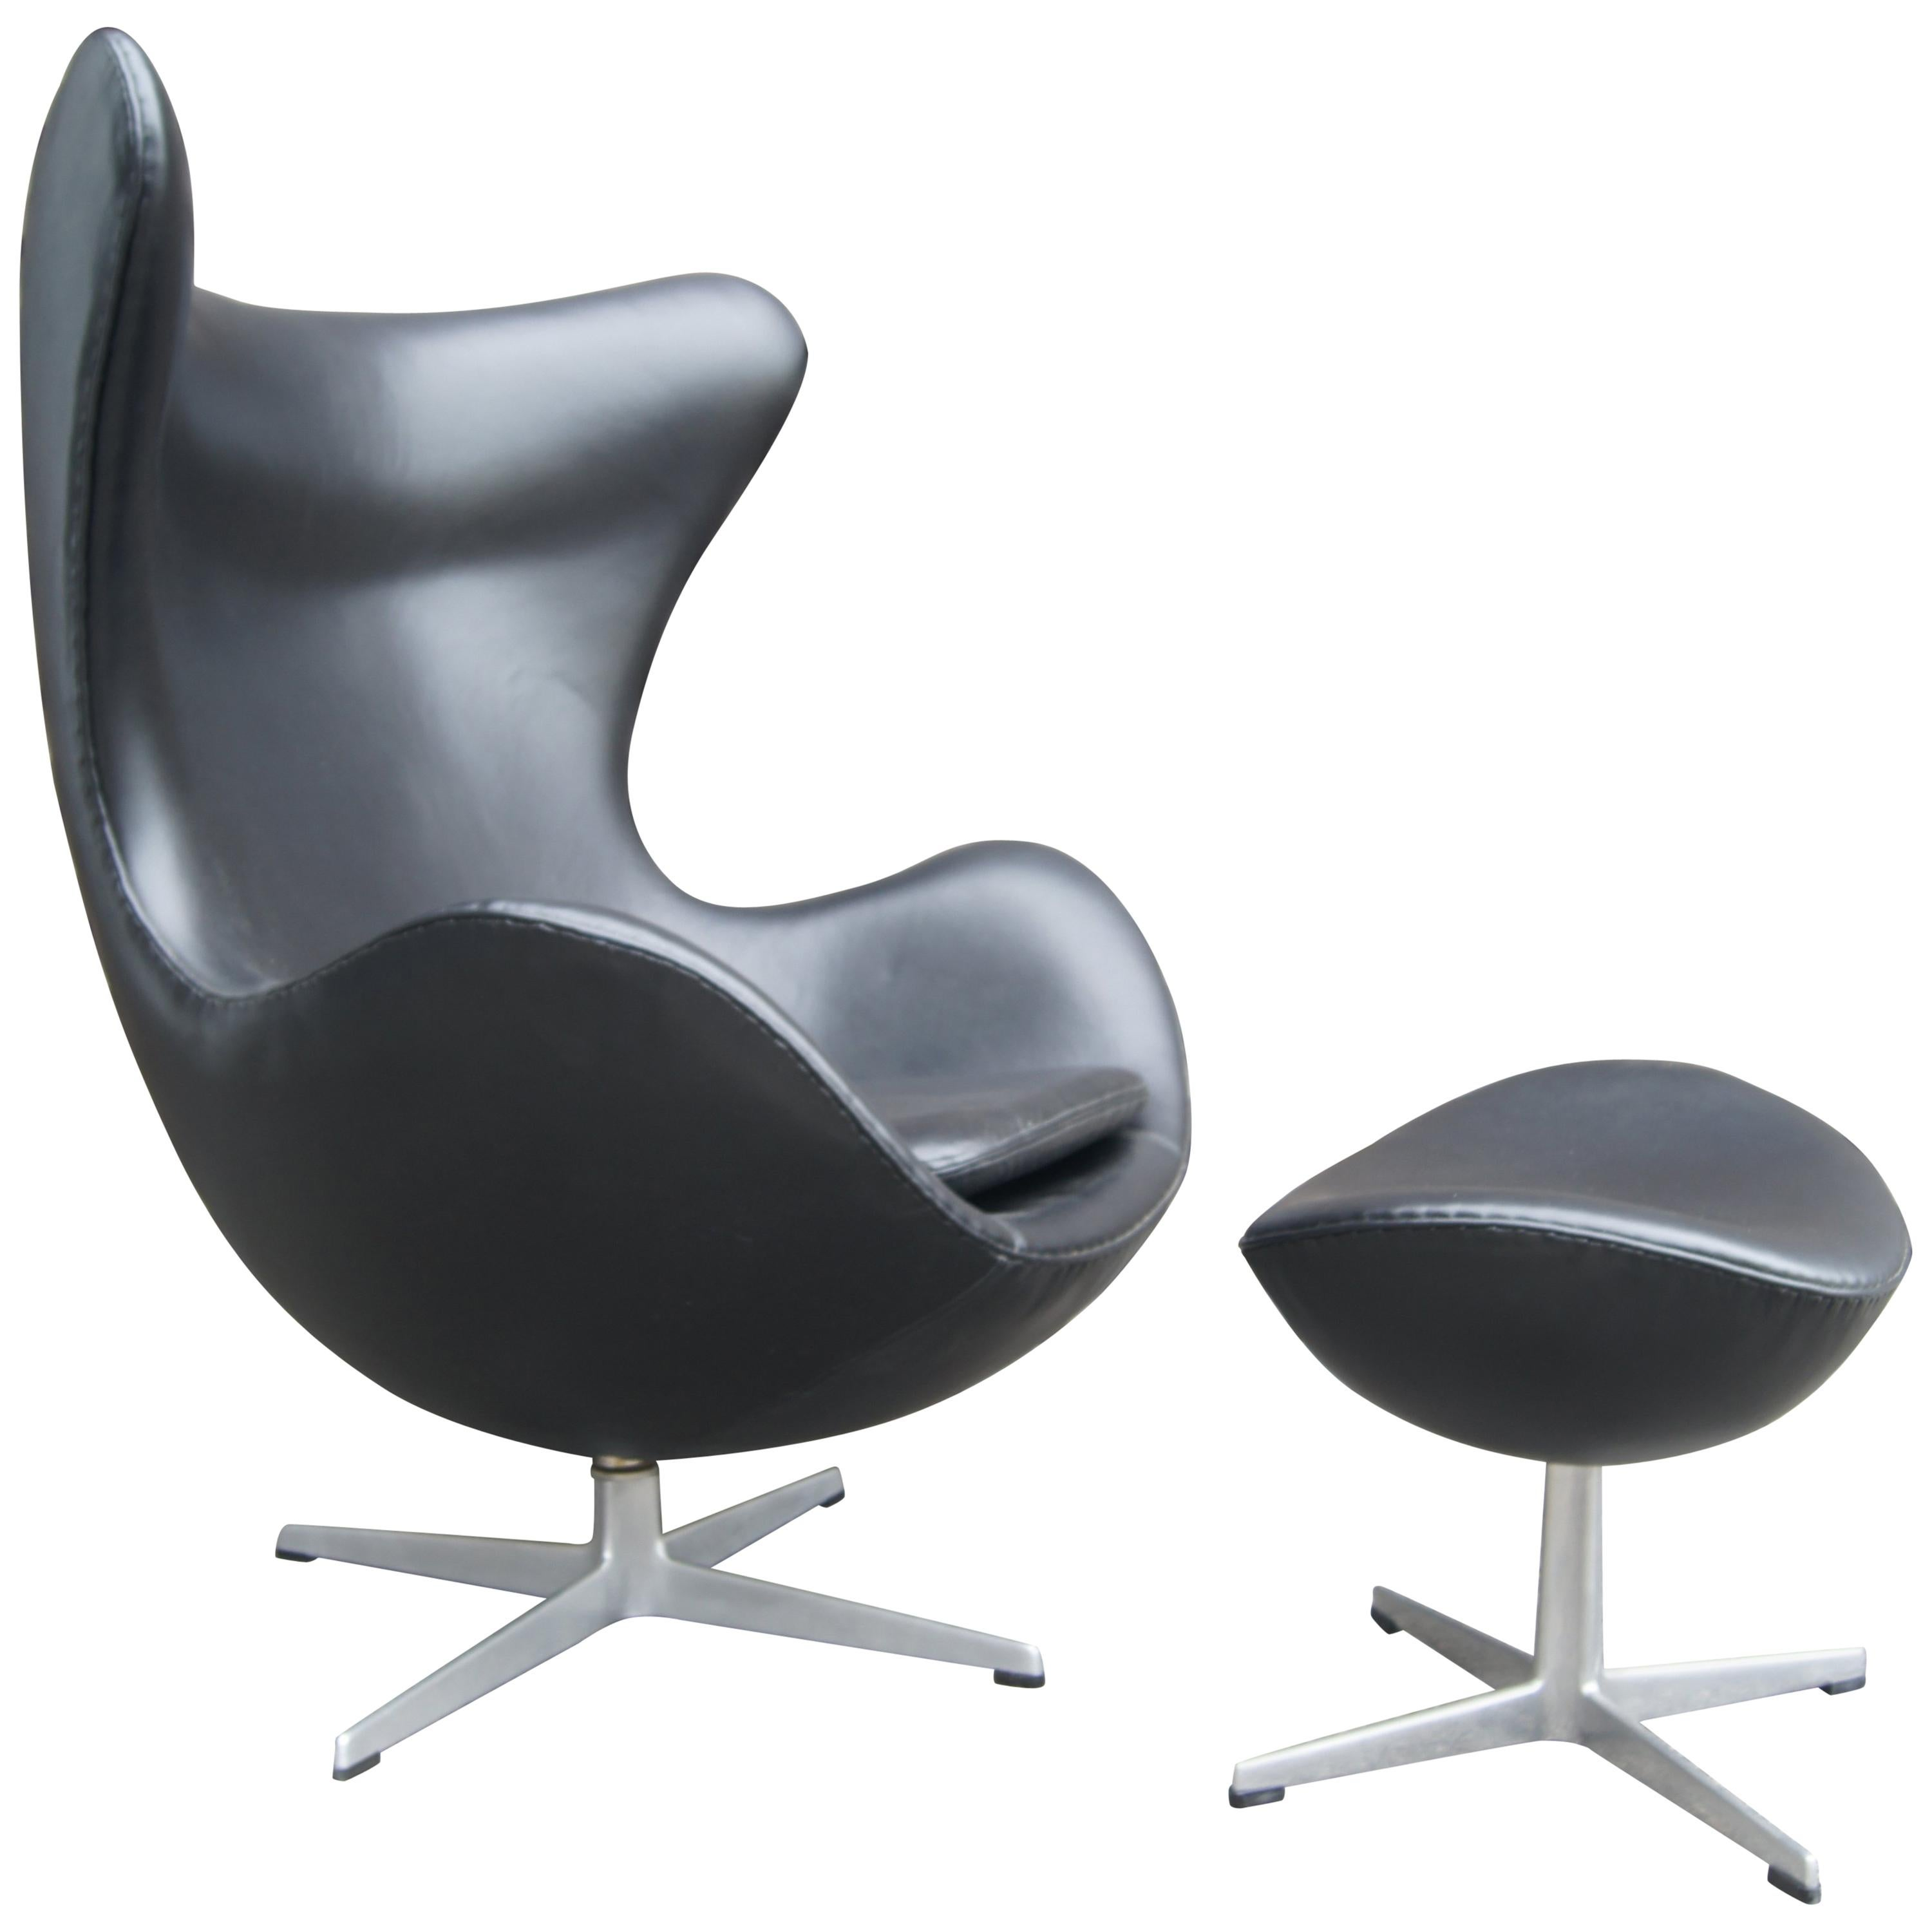 Black Leather Egg Chair And Ottoman By Arne Jacobsen For Fritz Hansen